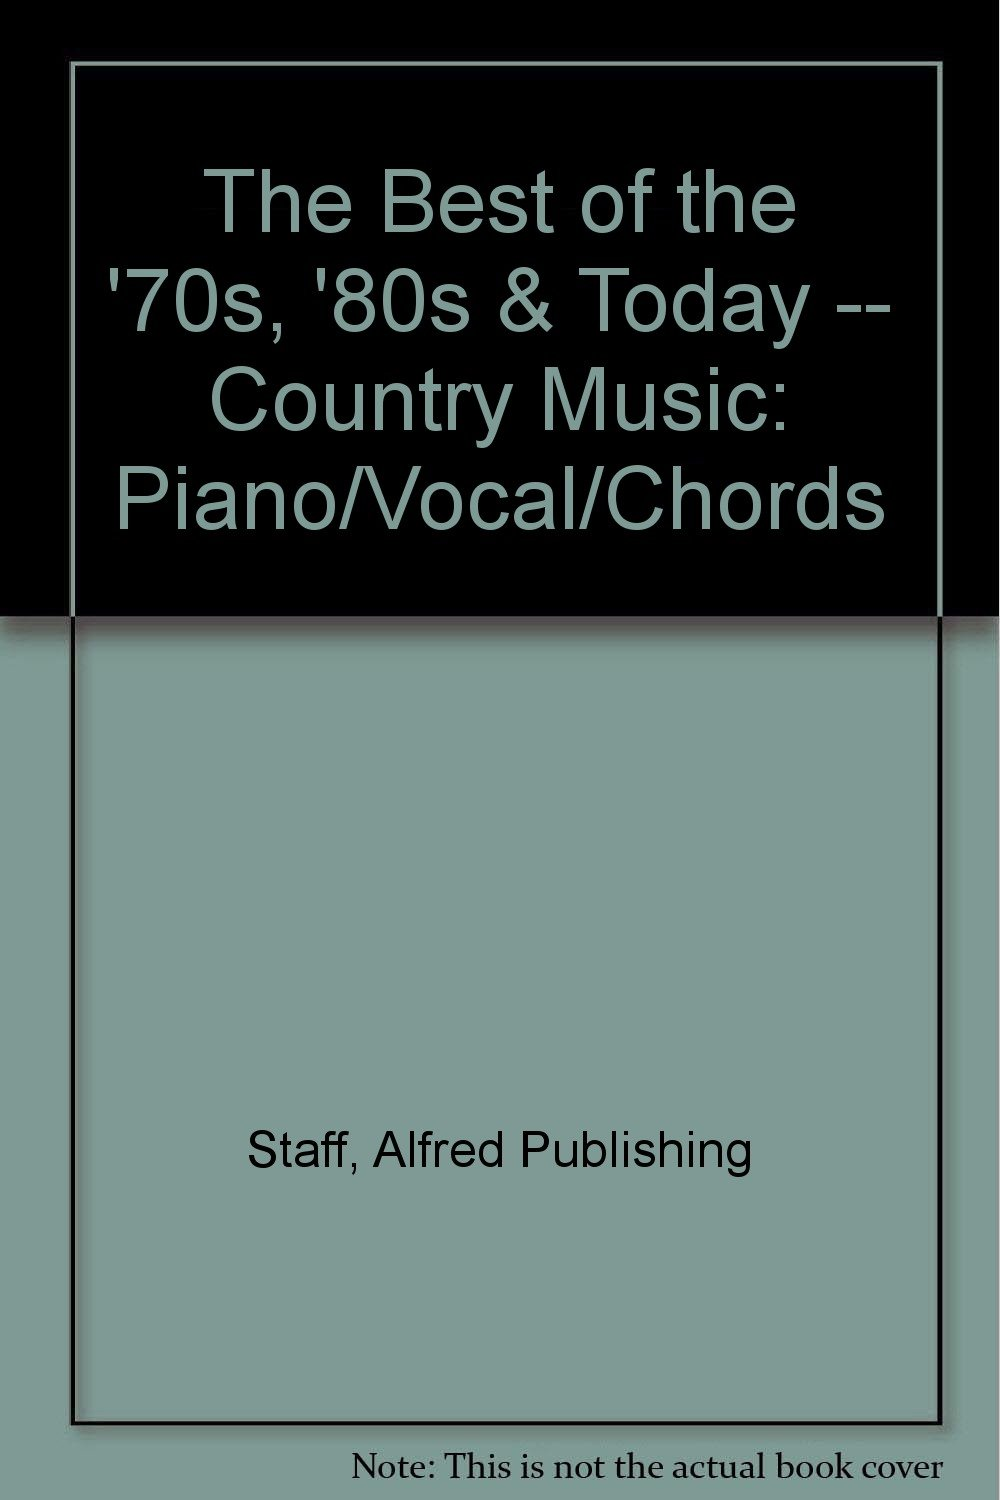 The Best Of The 70s 80s Today Country Music Pianovocal